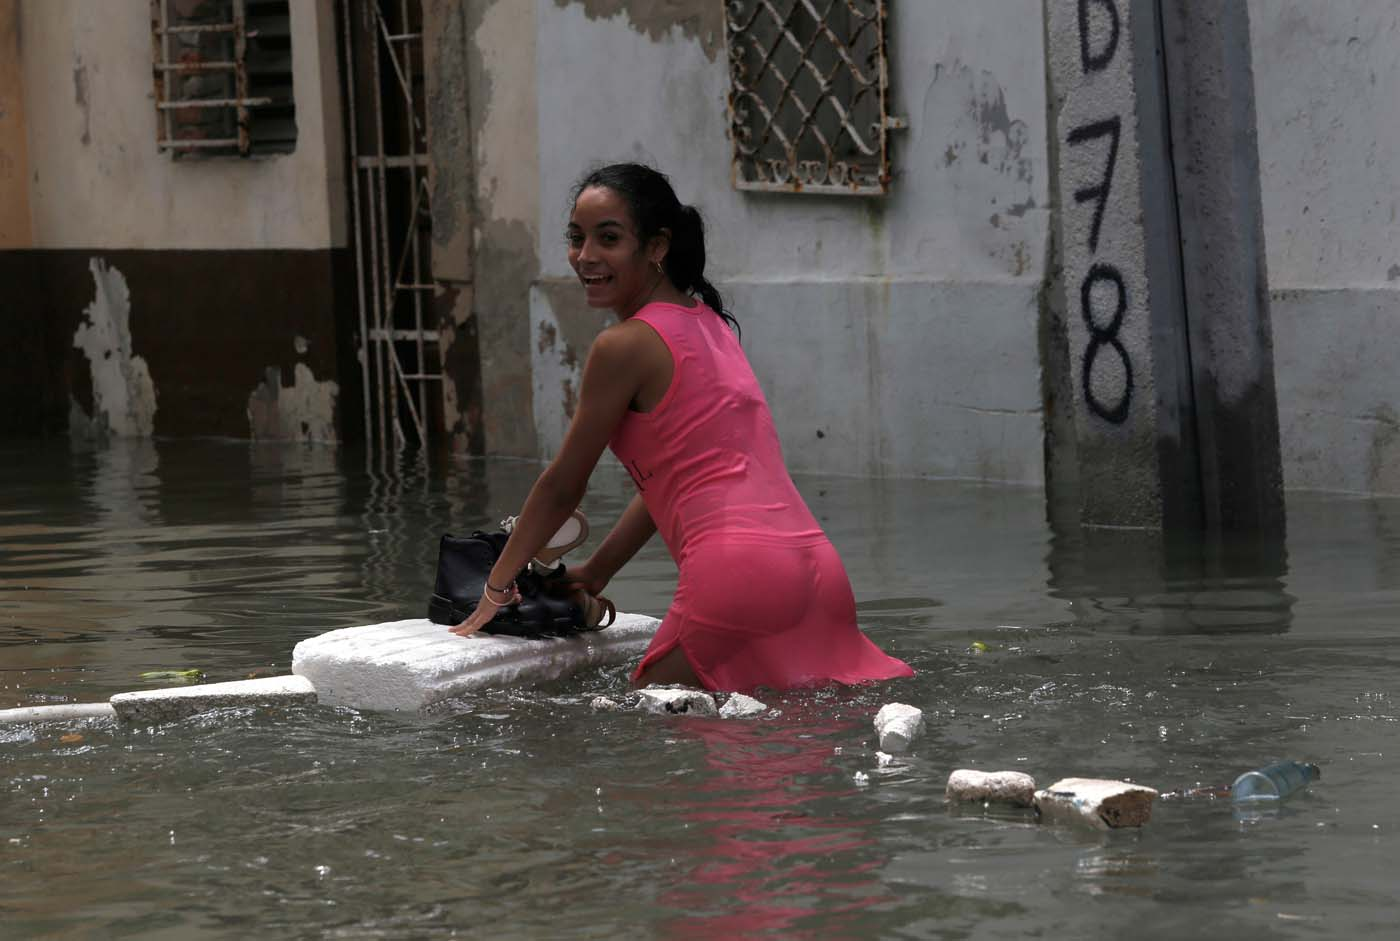 A woman keeps her shoes dry on a piece of foam board while wading through a flooded street, after the passing of Hurricane Irma, in Havana, Cuba September 10, 2017. REUTERS/Stringer NO SALES. NO ARCHIVES TPX IMAGES OF THE DAY